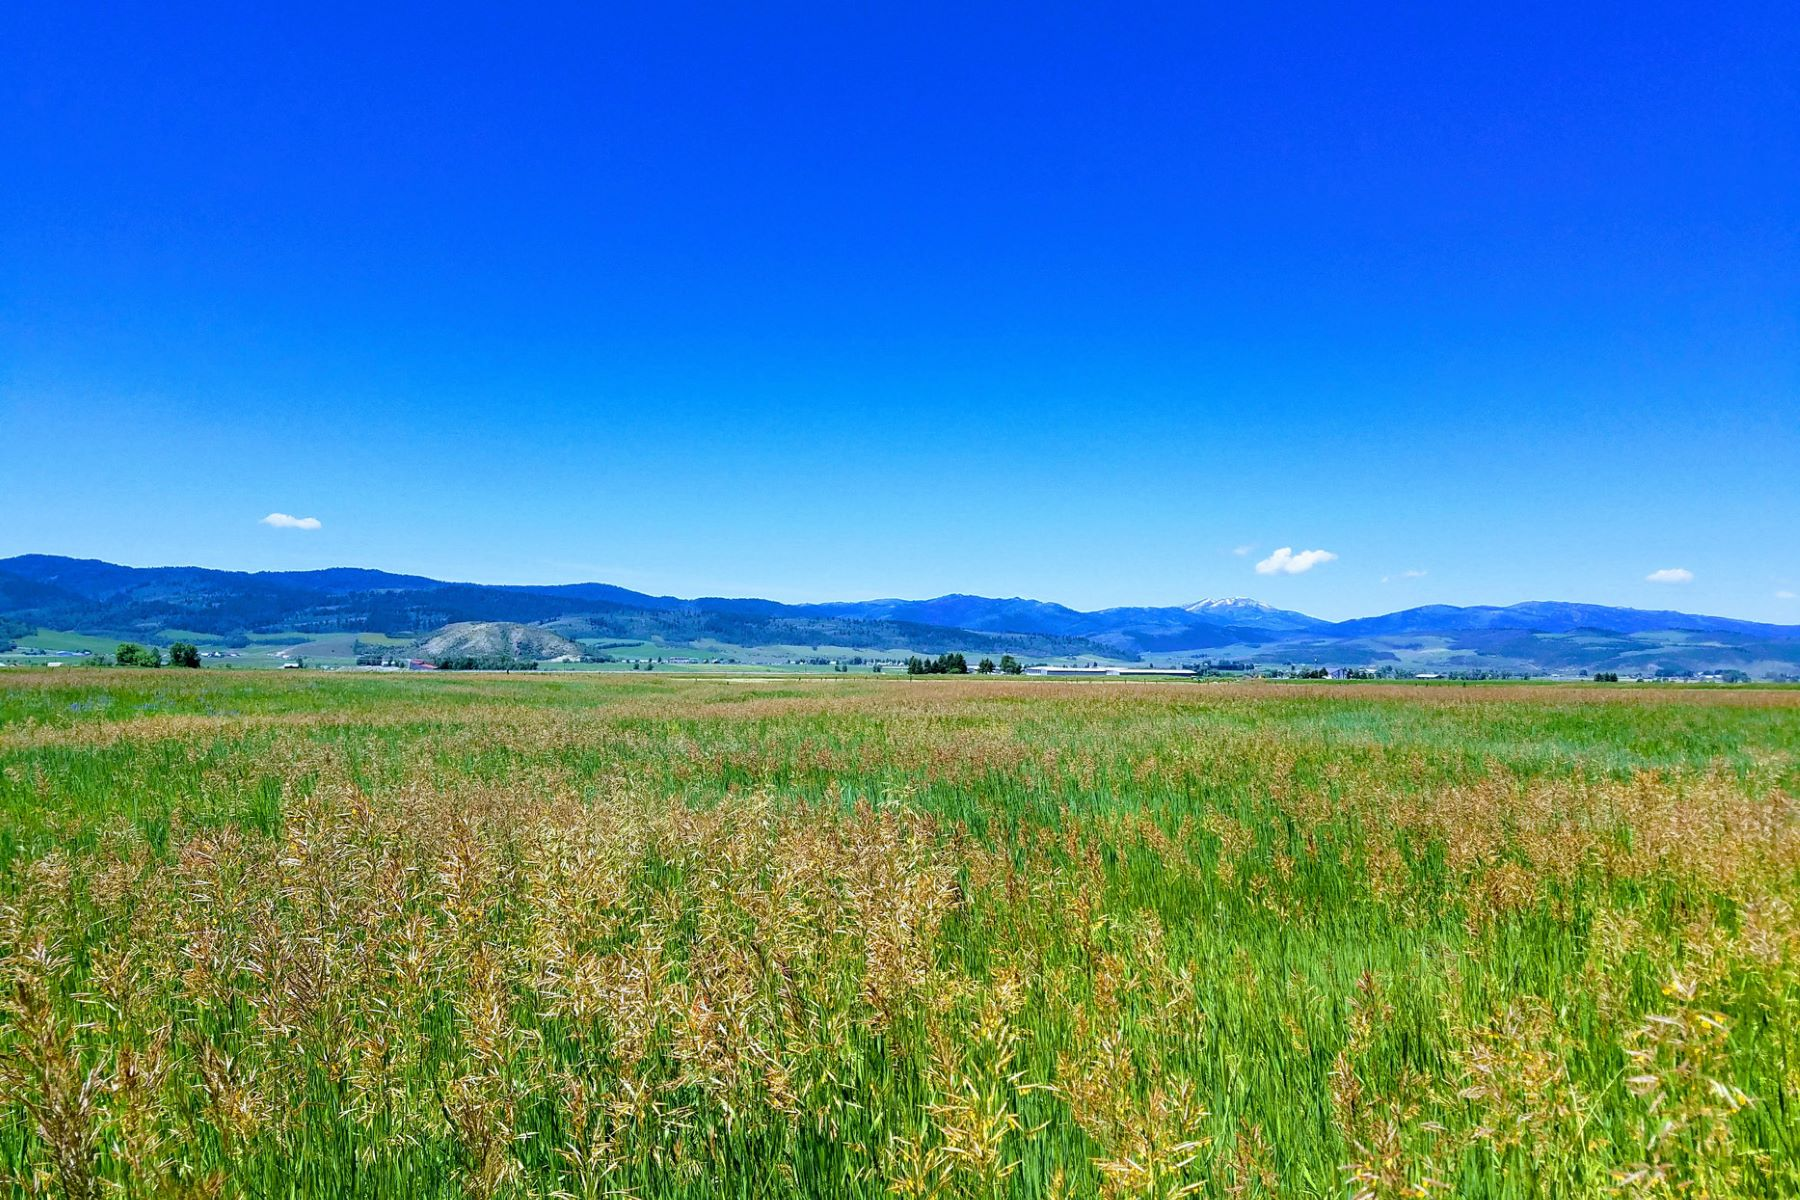 Land for Sale at Premier Bridger View Ranches Home Site Lot 5, Bridger Drive Thayne, Wyoming 83127 United States